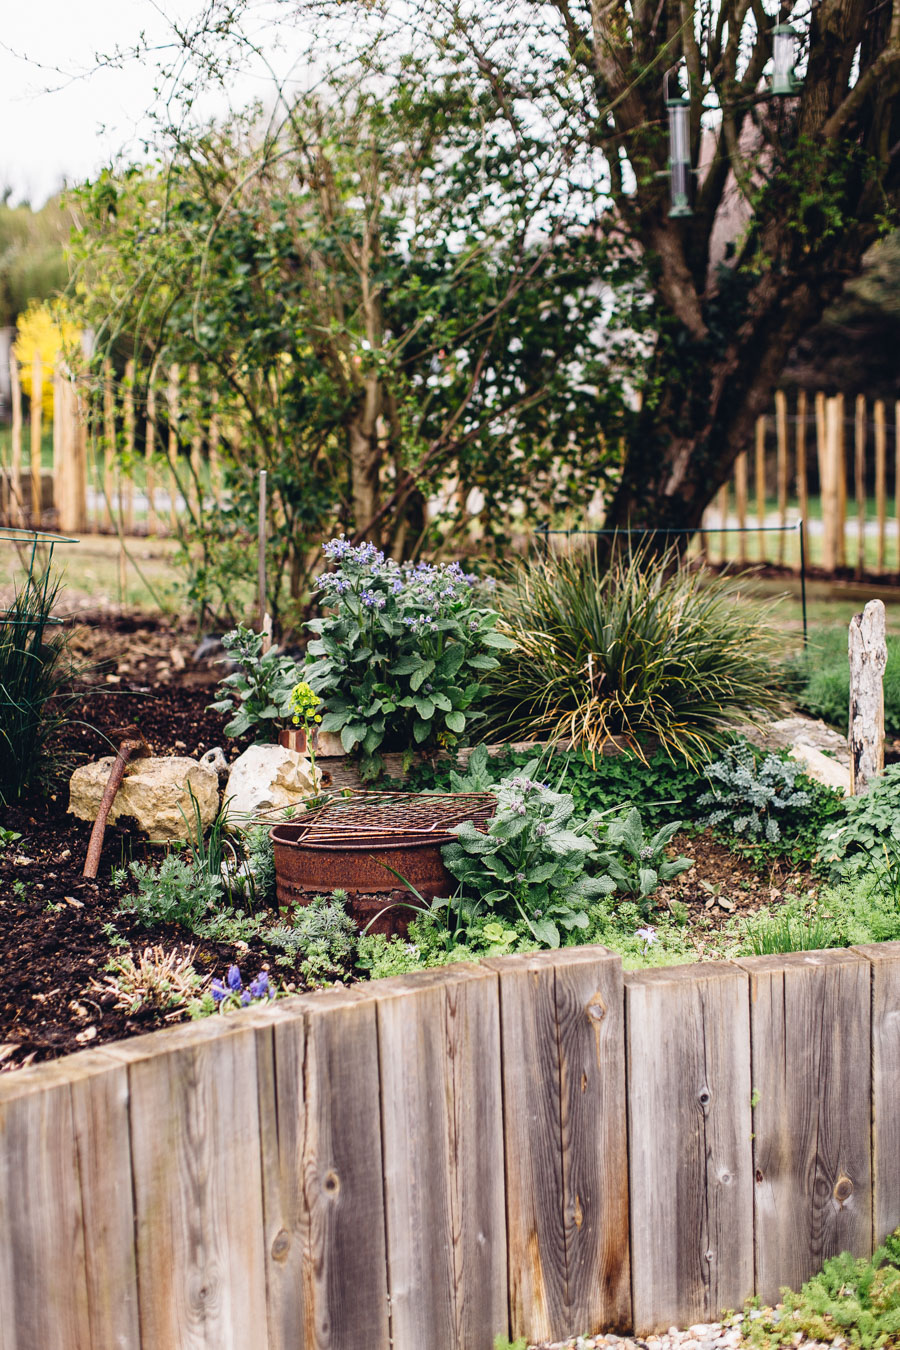 Garden mulching and what's growing in April